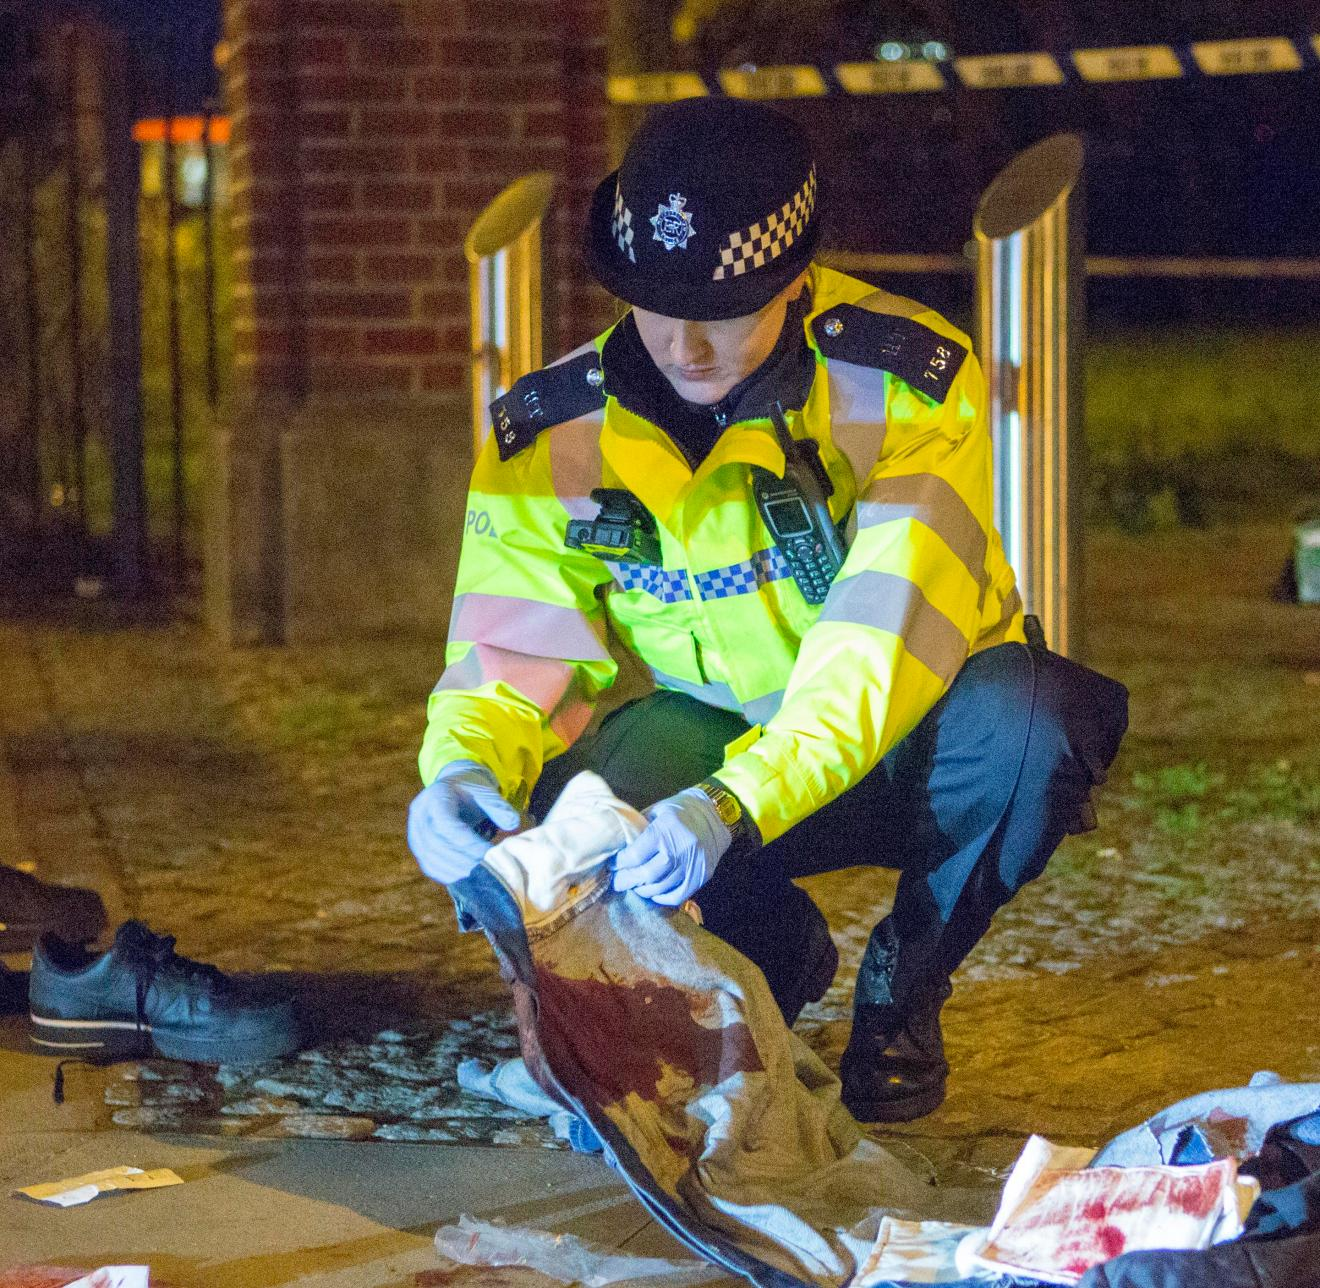 An officer picks up bloodied clothes at the scene of the attempted murder in Mile End